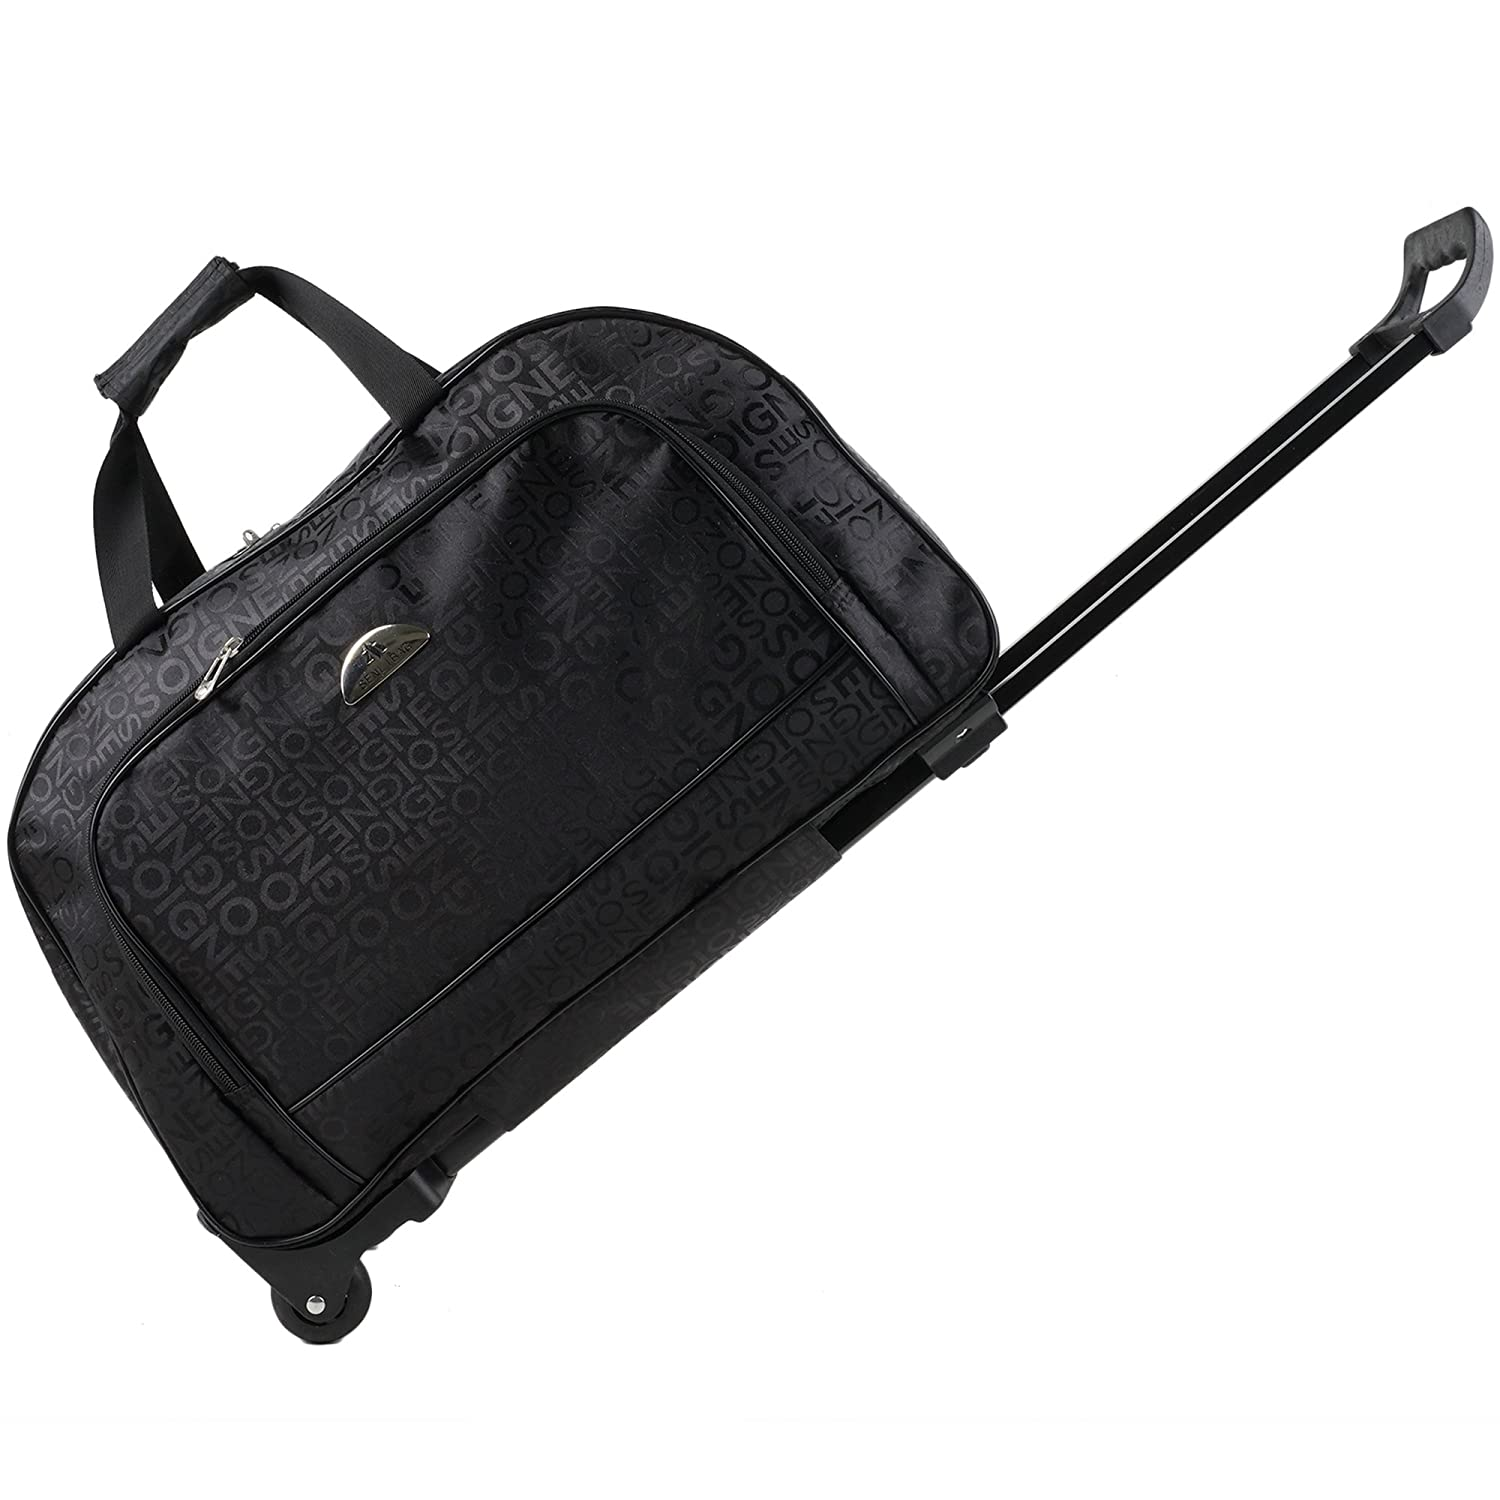 4013e2168 Amazon.com | Jeemiter Luggage Rolling Duffle trolley bag travel bag tote  Carry-On Upgraded version | Carry-Ons